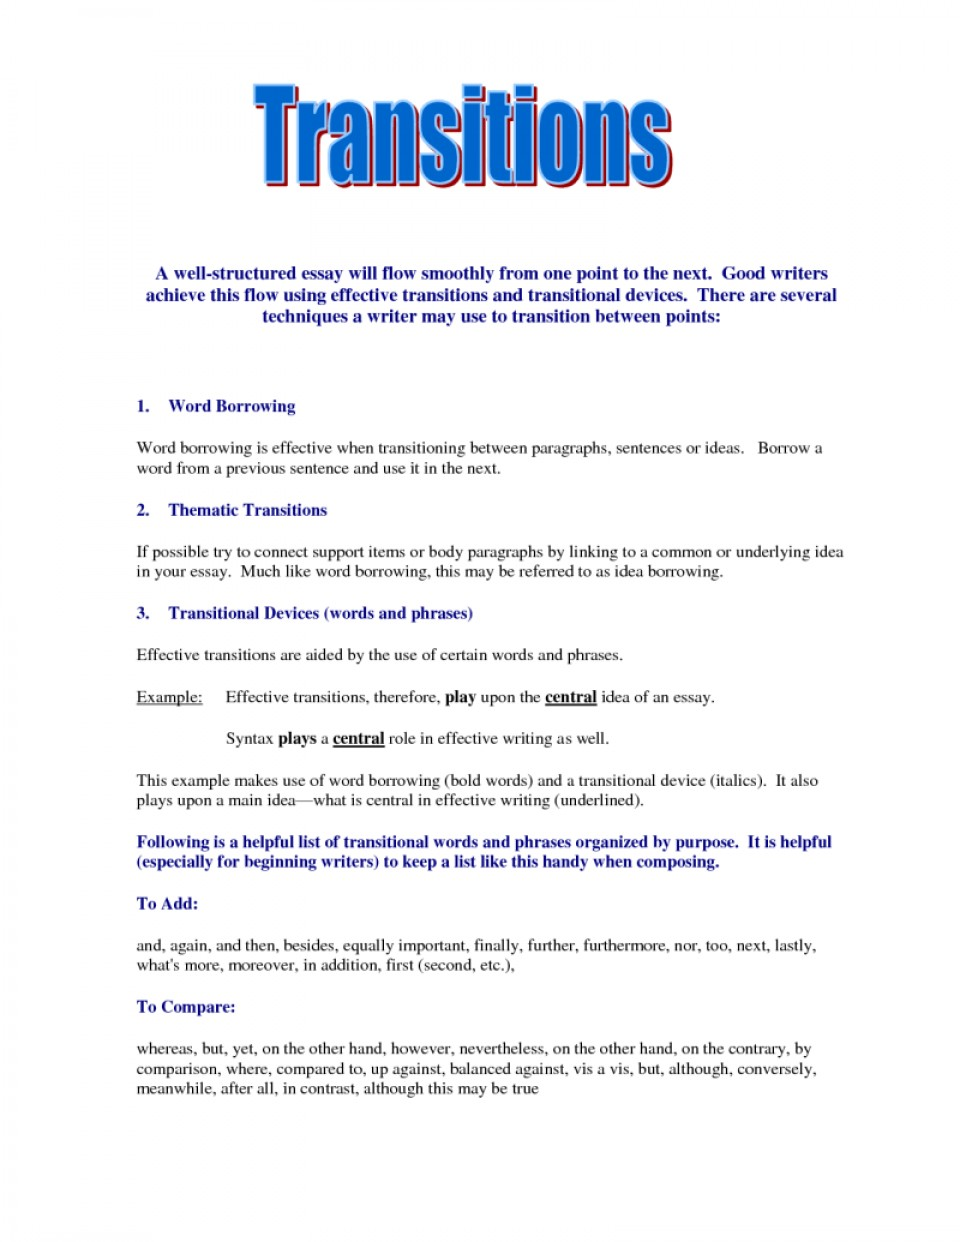 027 Transition Words And Phrases Fors Supporting Paragraphs Paragraph Transitions Ucsb Writing Program First Body Awesome Collection Of Sentences Examples You Amazing For Essays Opinion Narrative 5th Grade Expository 960